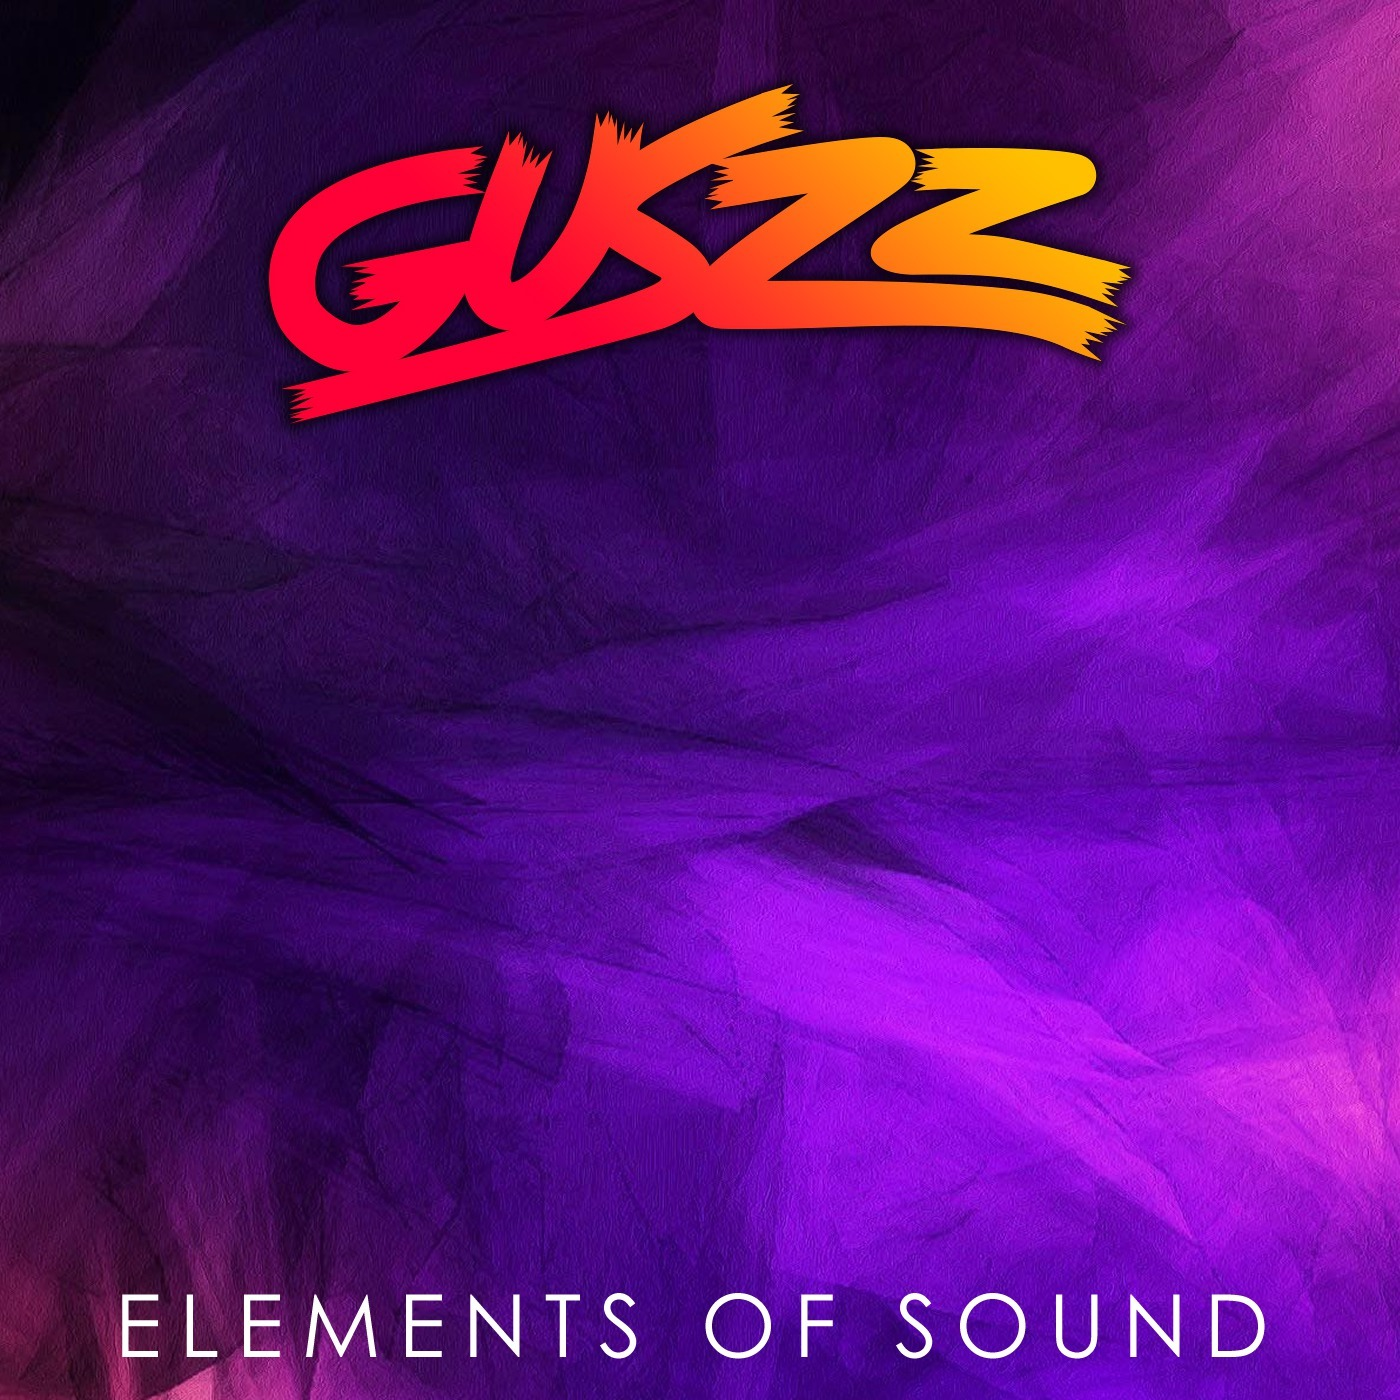 Elements of Sound